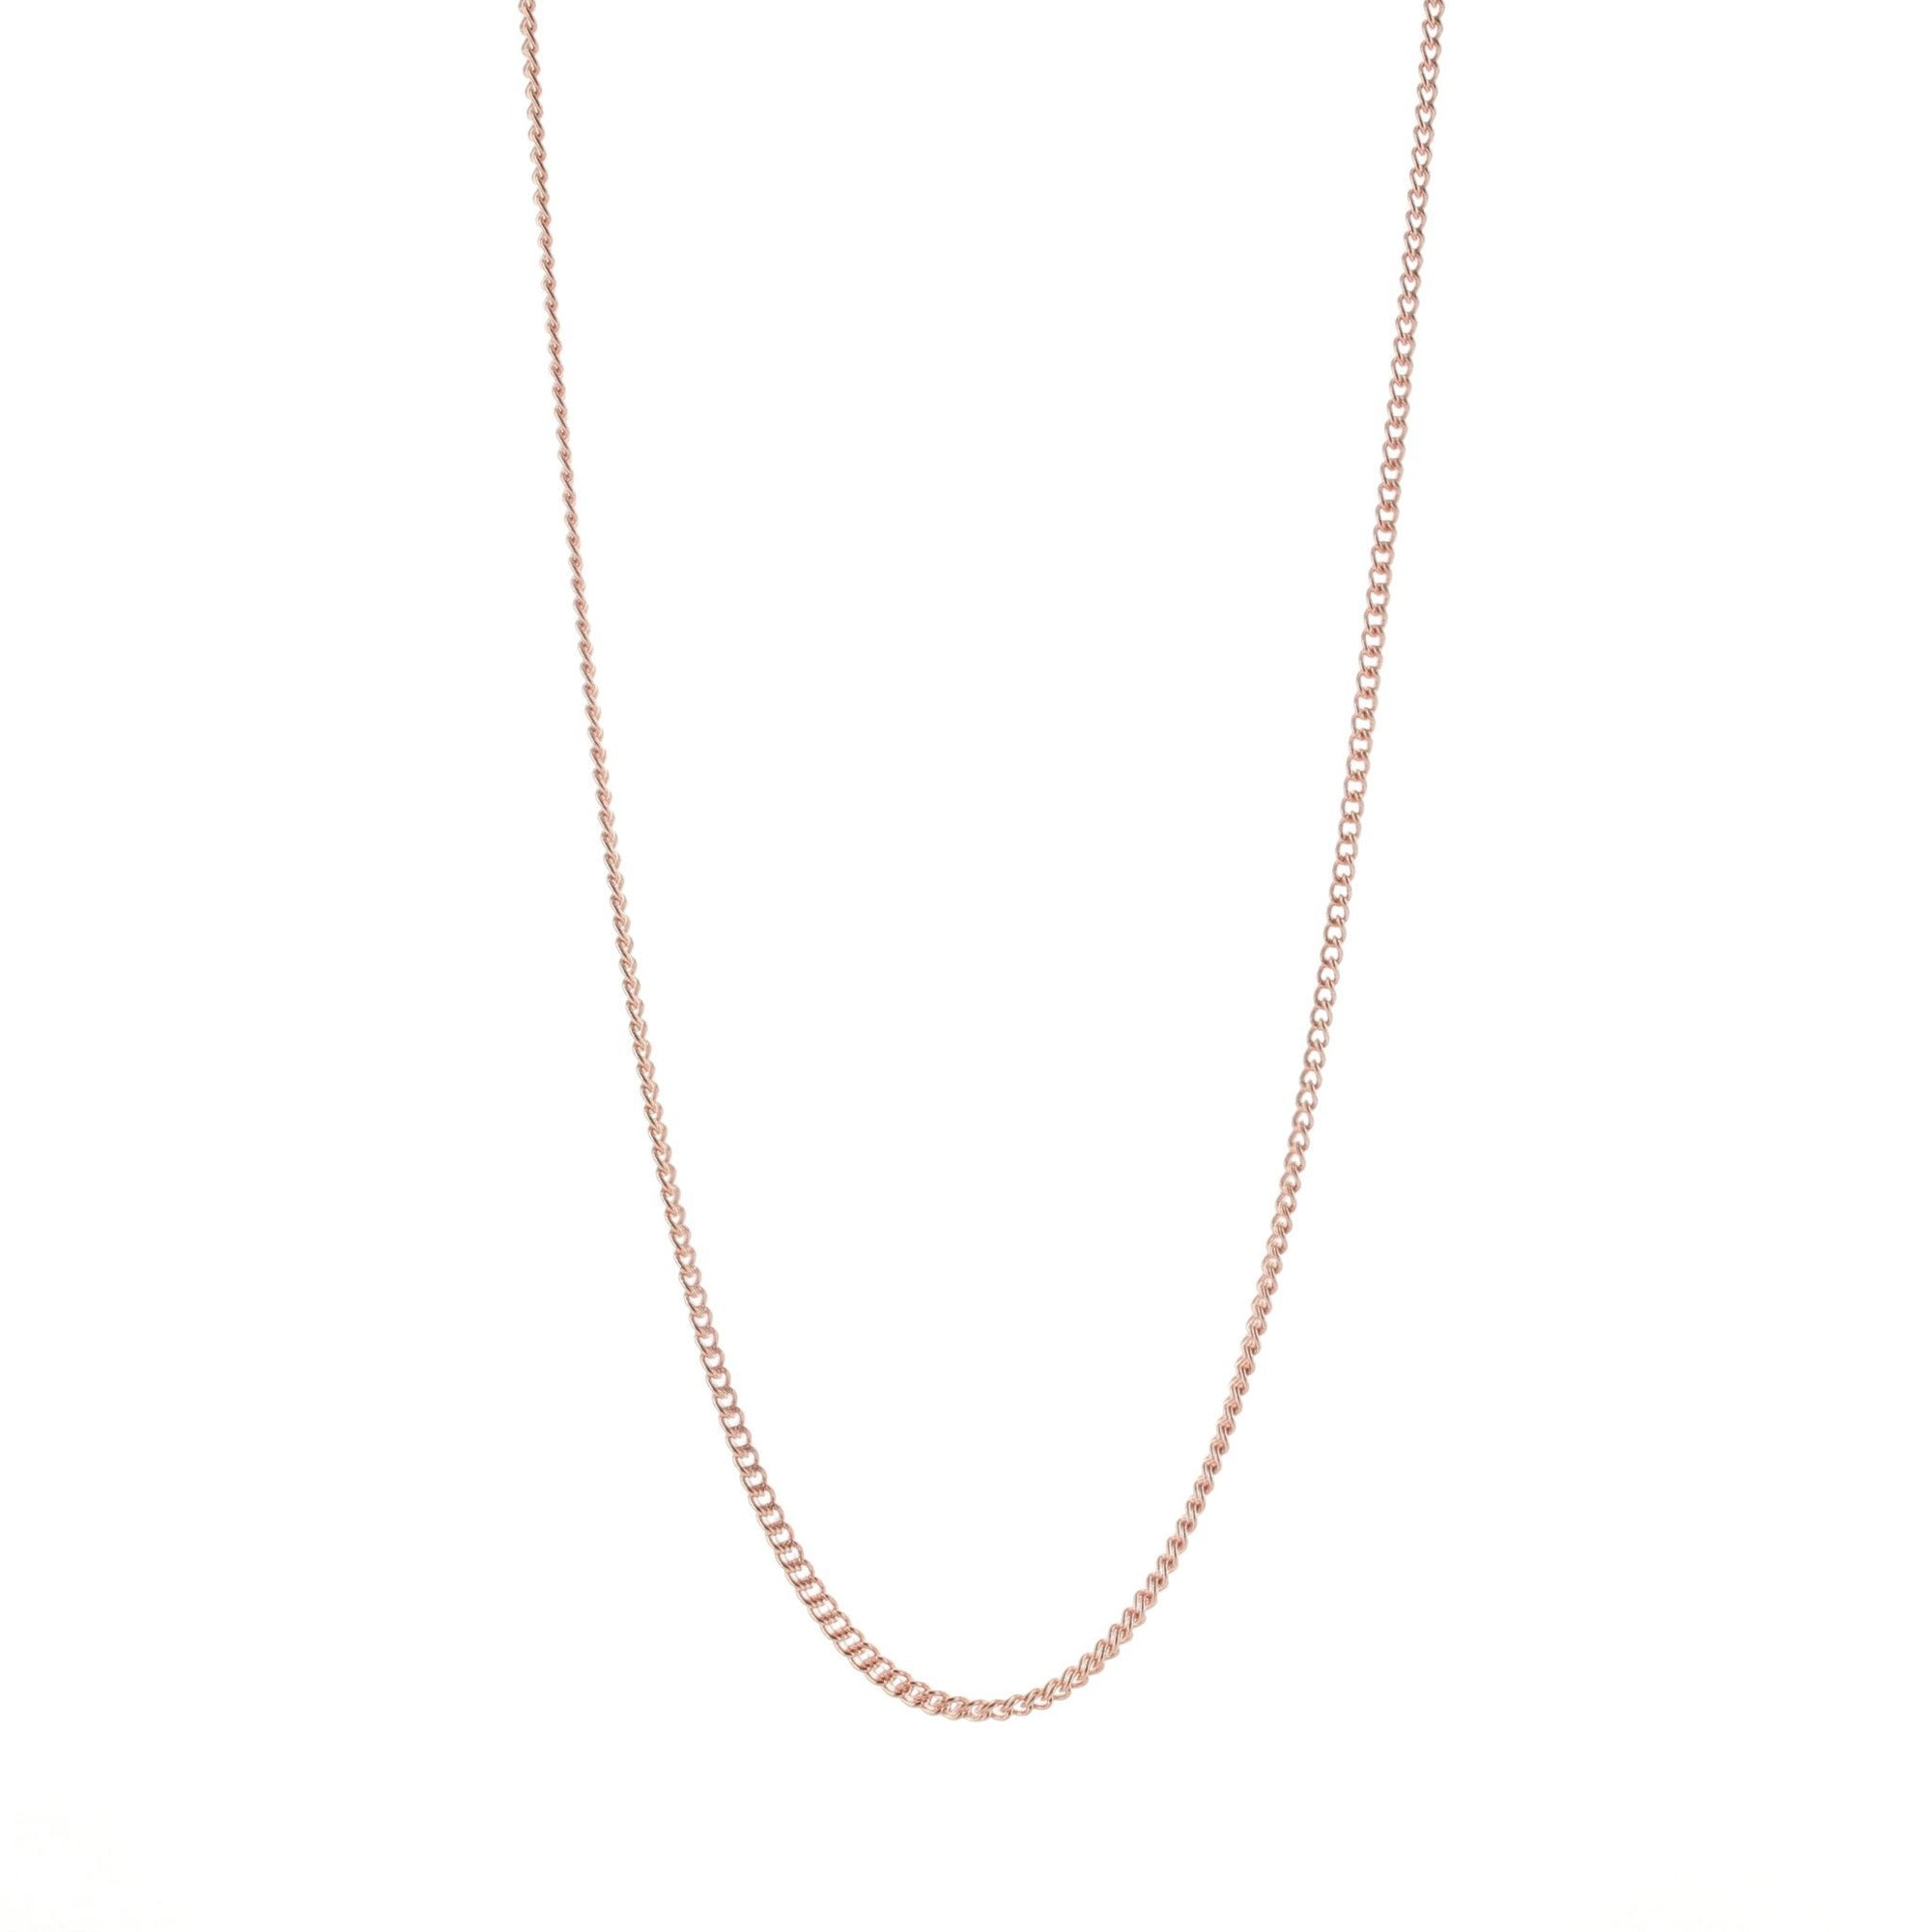 "CHARMING 28-30"" NECKLACE ROSE GOLD - SO PRETTY CARA COTTER"